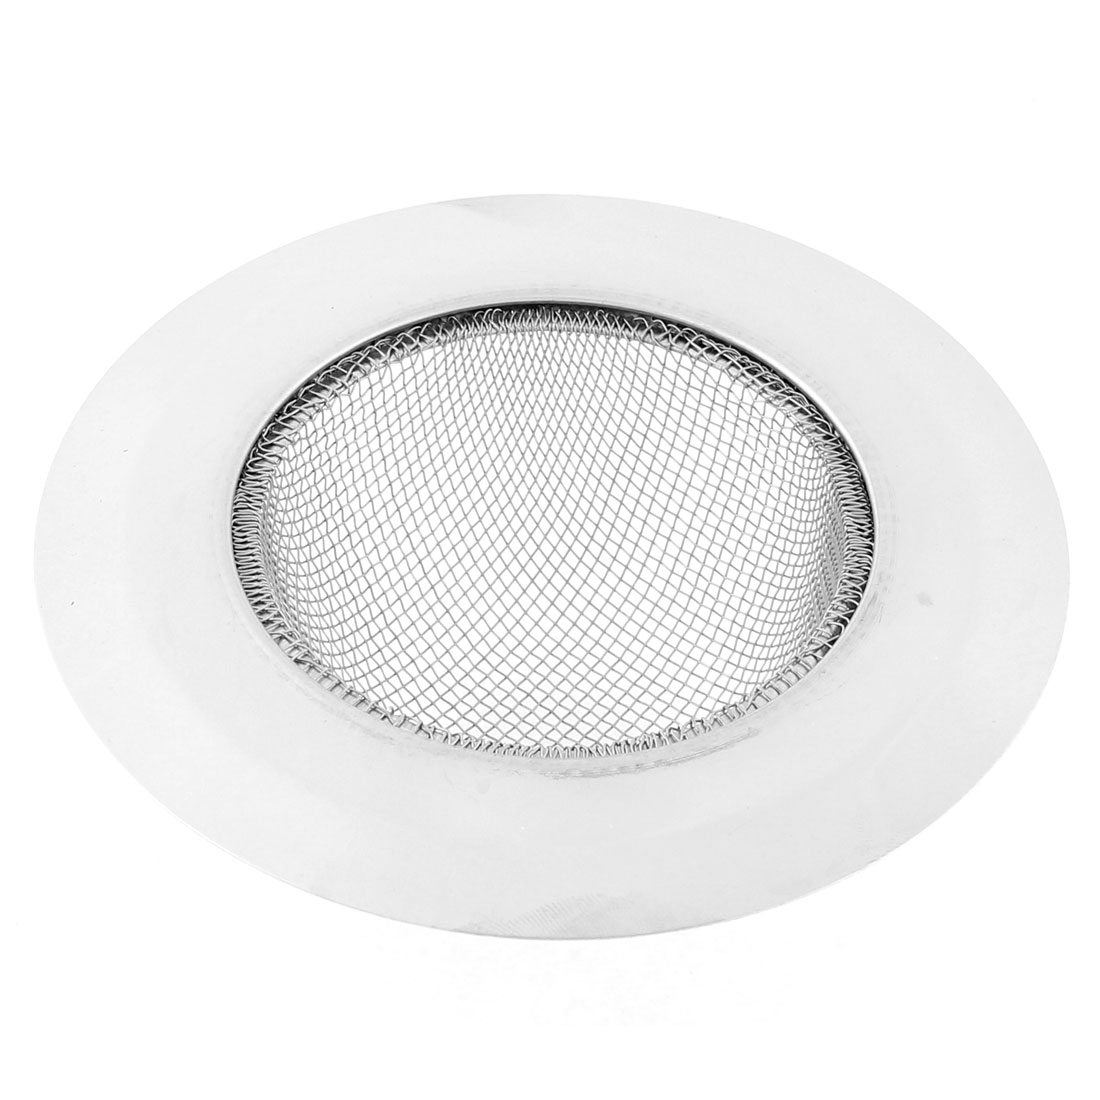 Home Stainless Steel Basin Wire Mesh Sink Strainer Drainer 11.5cm Dia